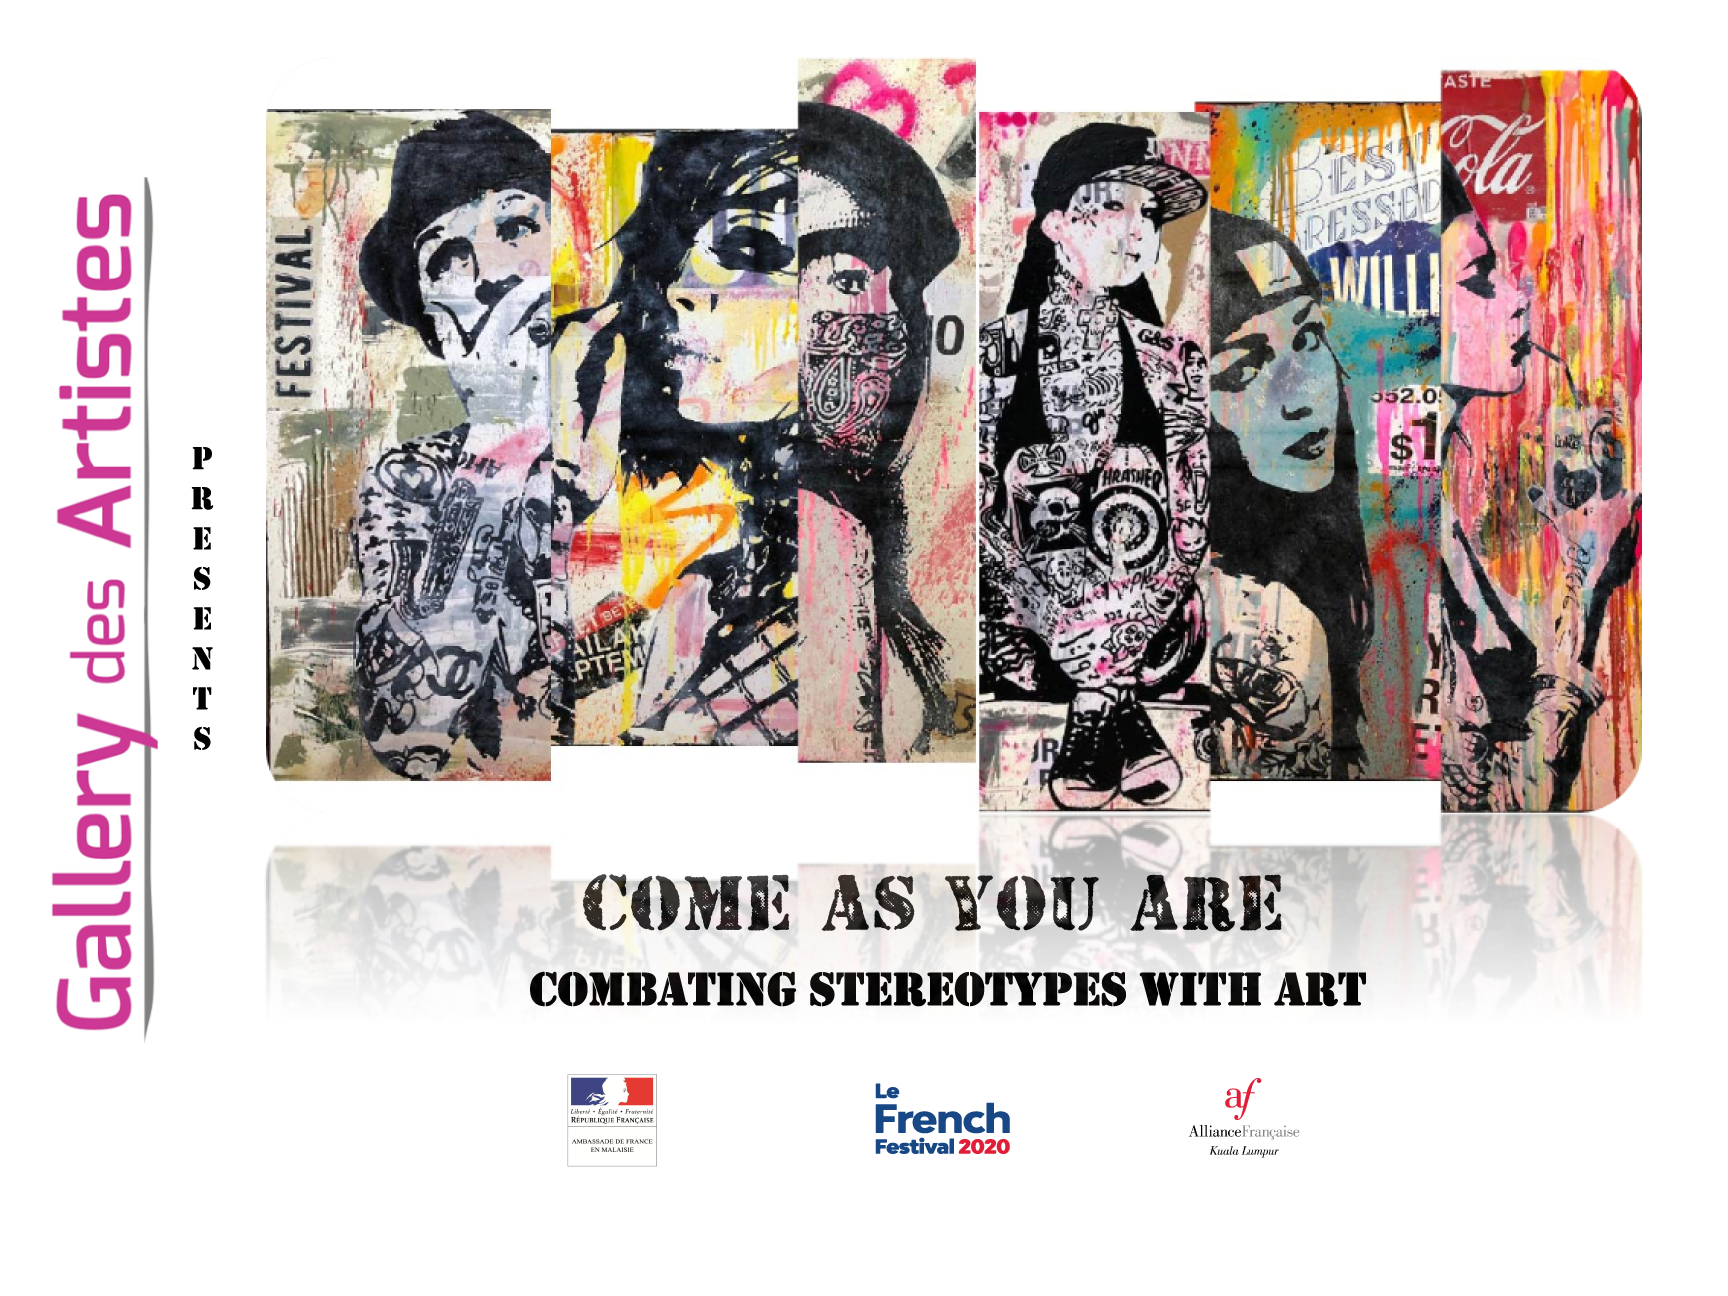 Come As You Are - Combating Stereotypes with Art